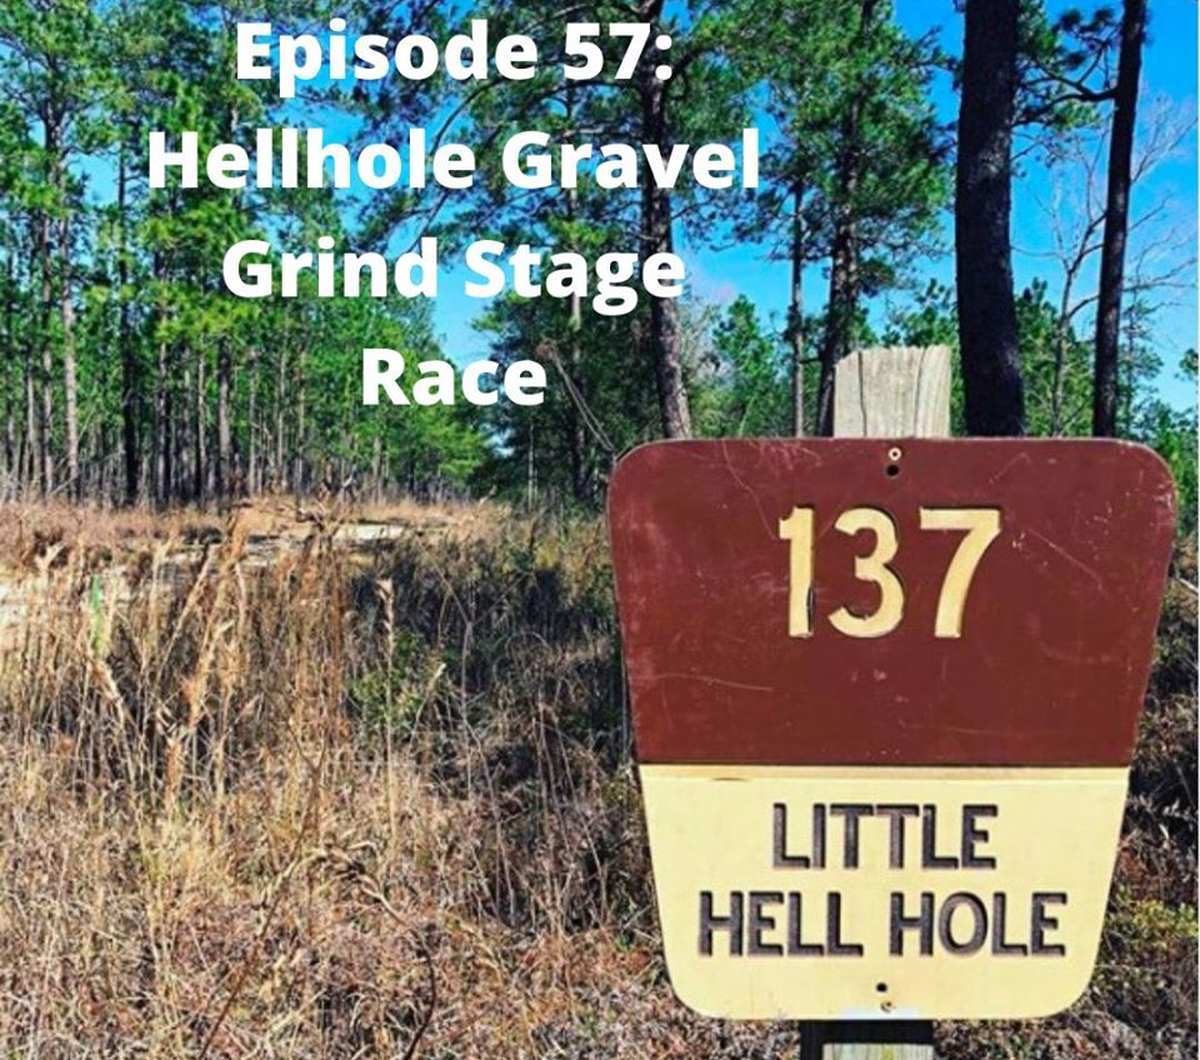 hellhole gravel grind gravel race podcast